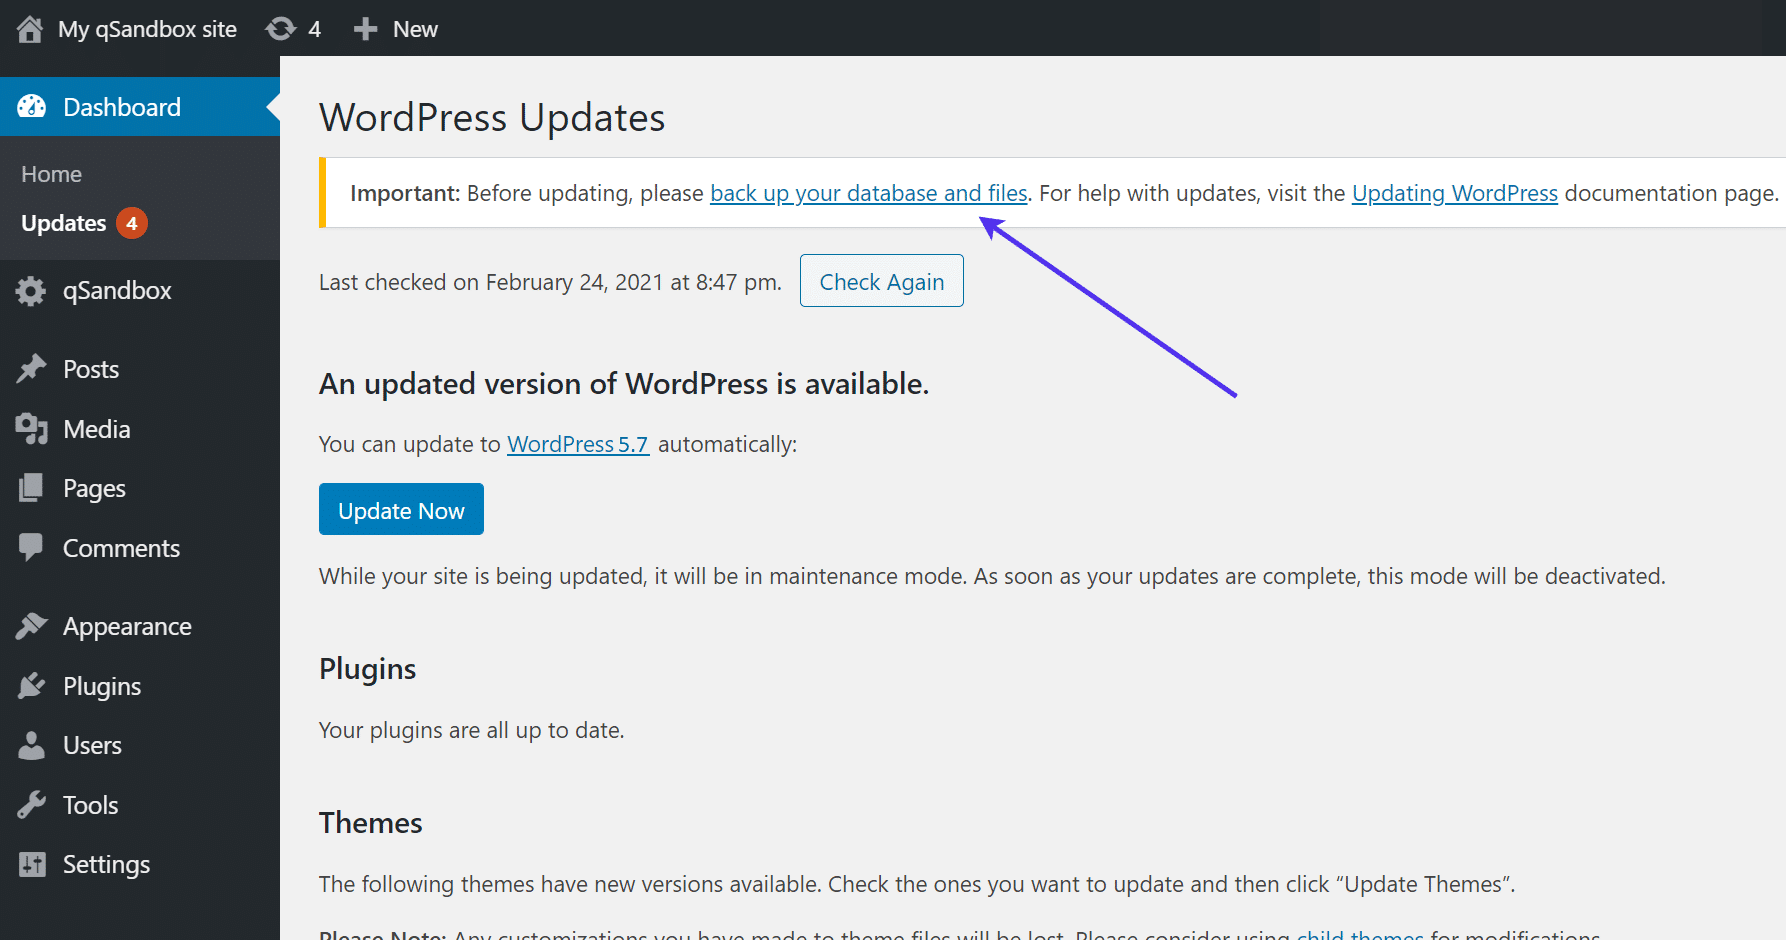 Take a backup of your site before updating.